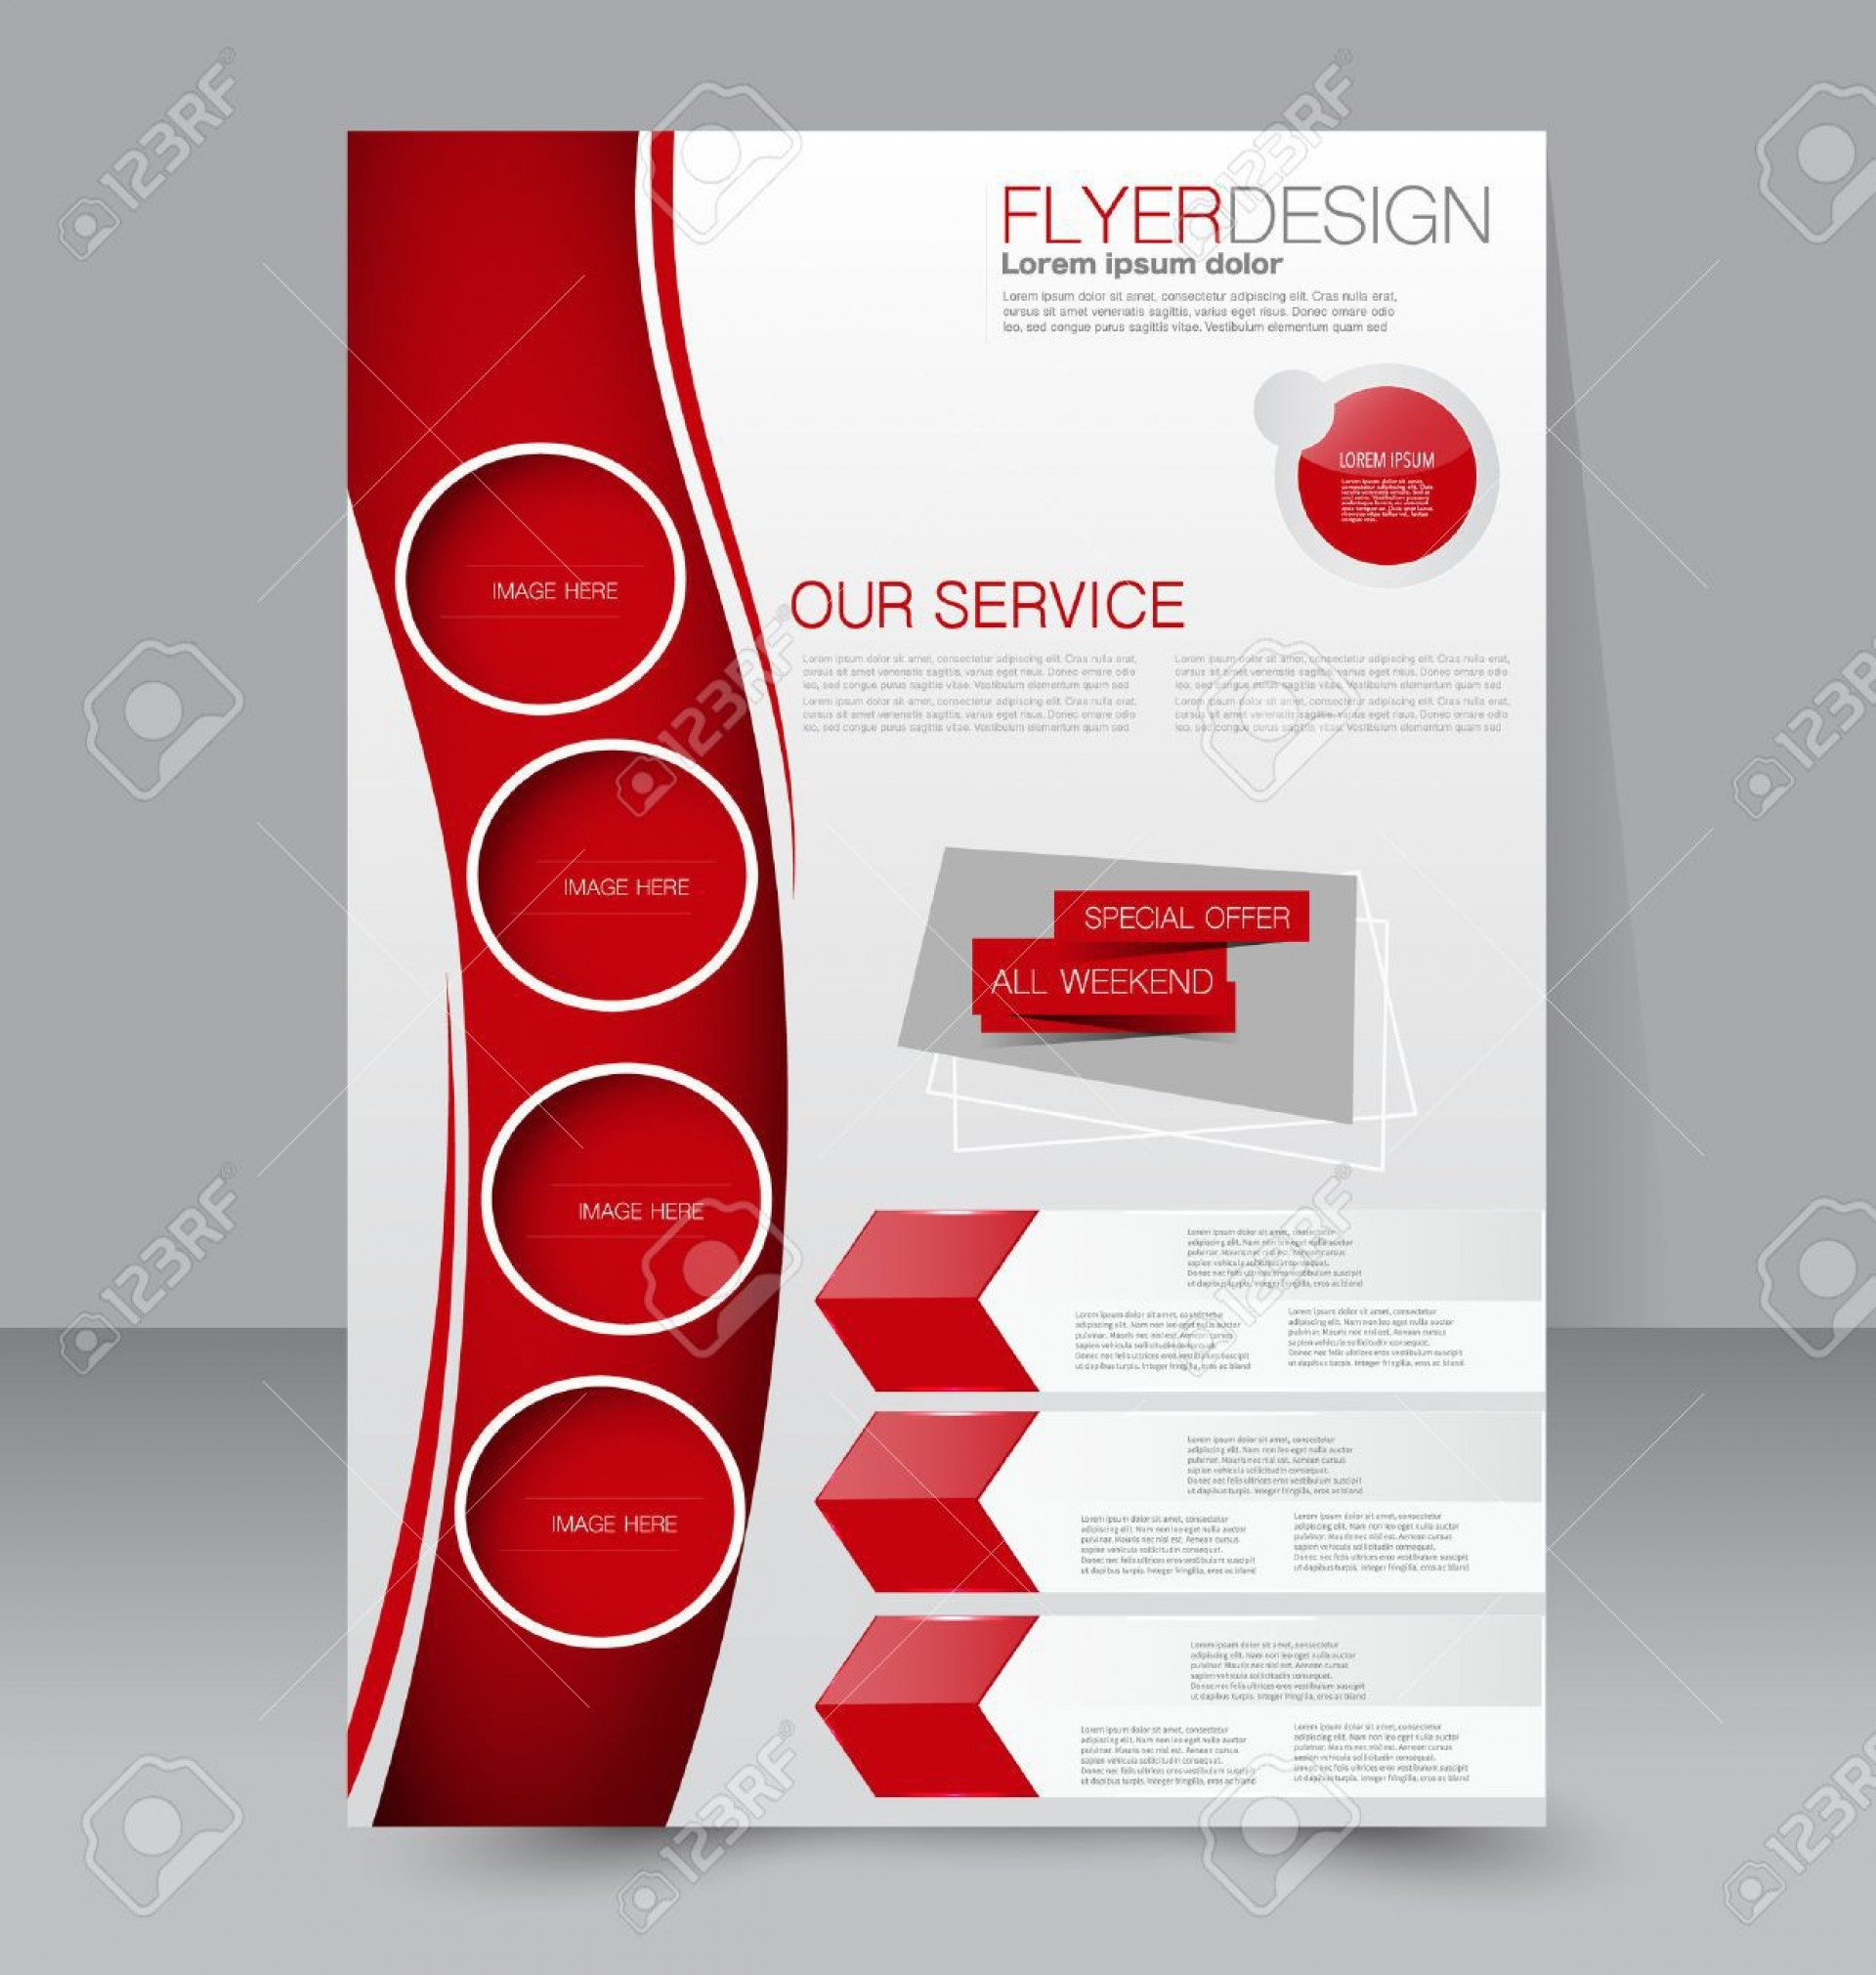 003 Magnificent Free Editable Flyer Template Image  Busines Fundraising1920